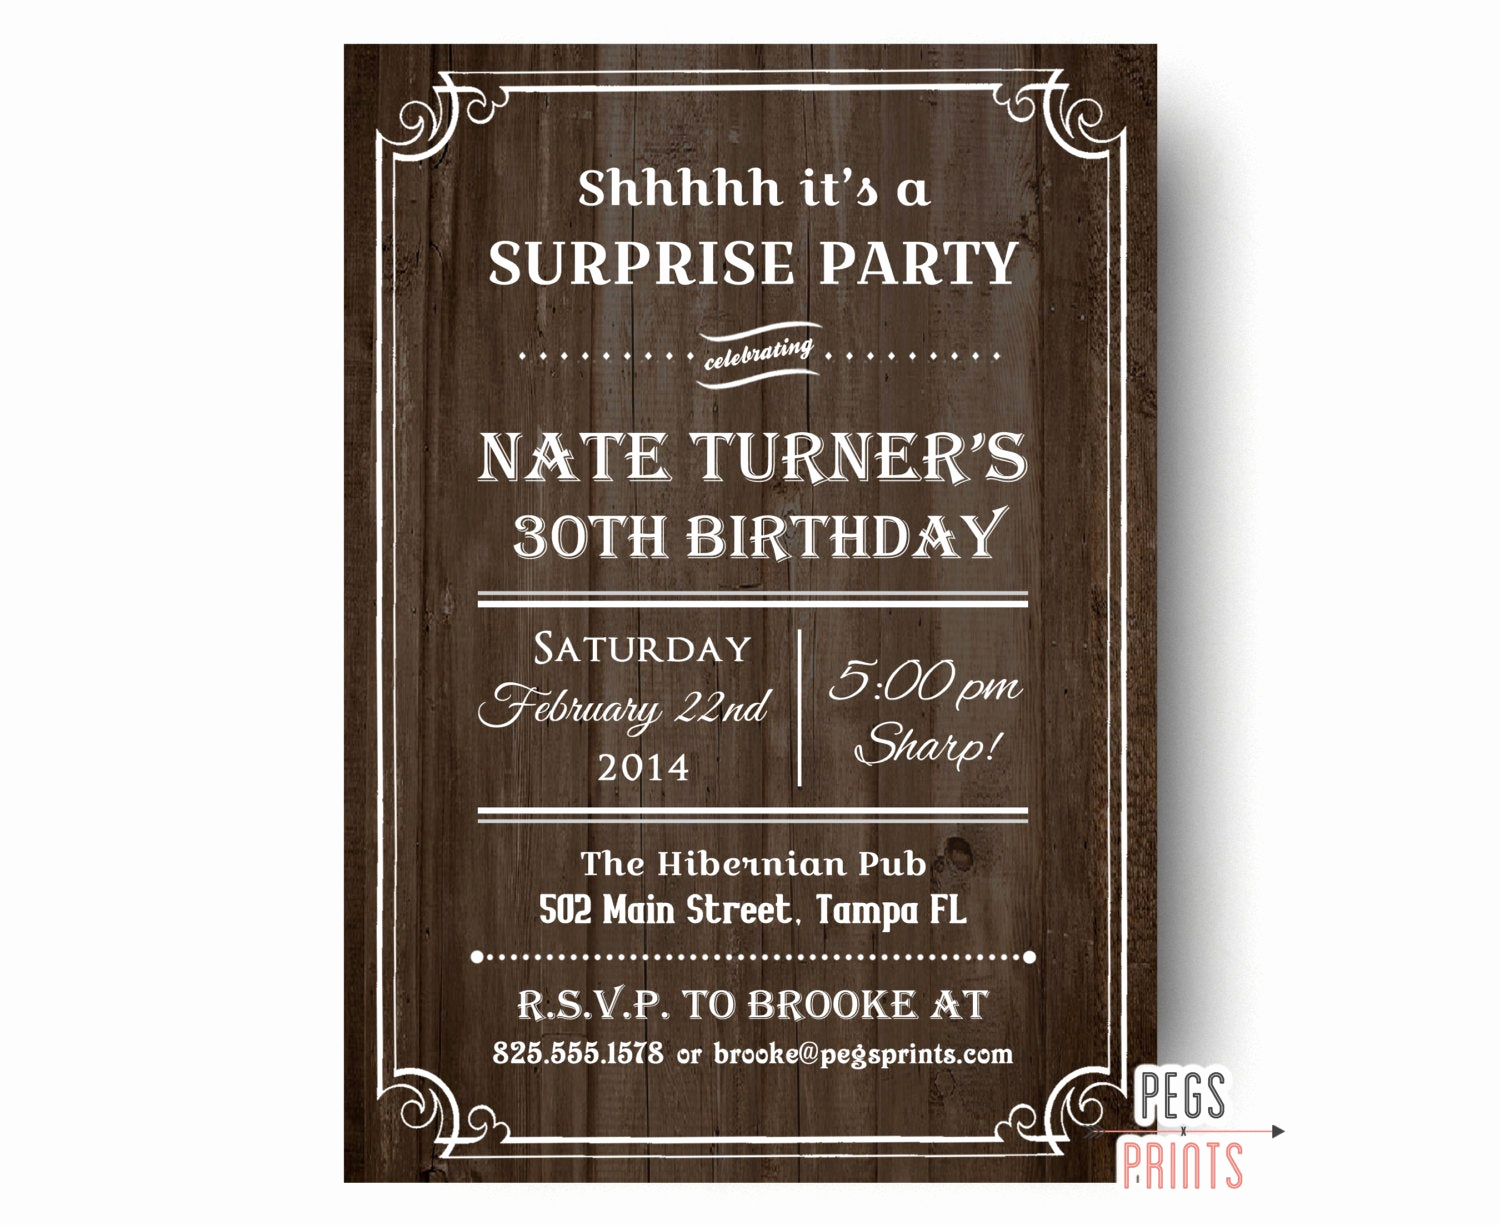 Surprise Party Invitation Wording New Rustic Surprise Party Invitations Printable Wood Surprise